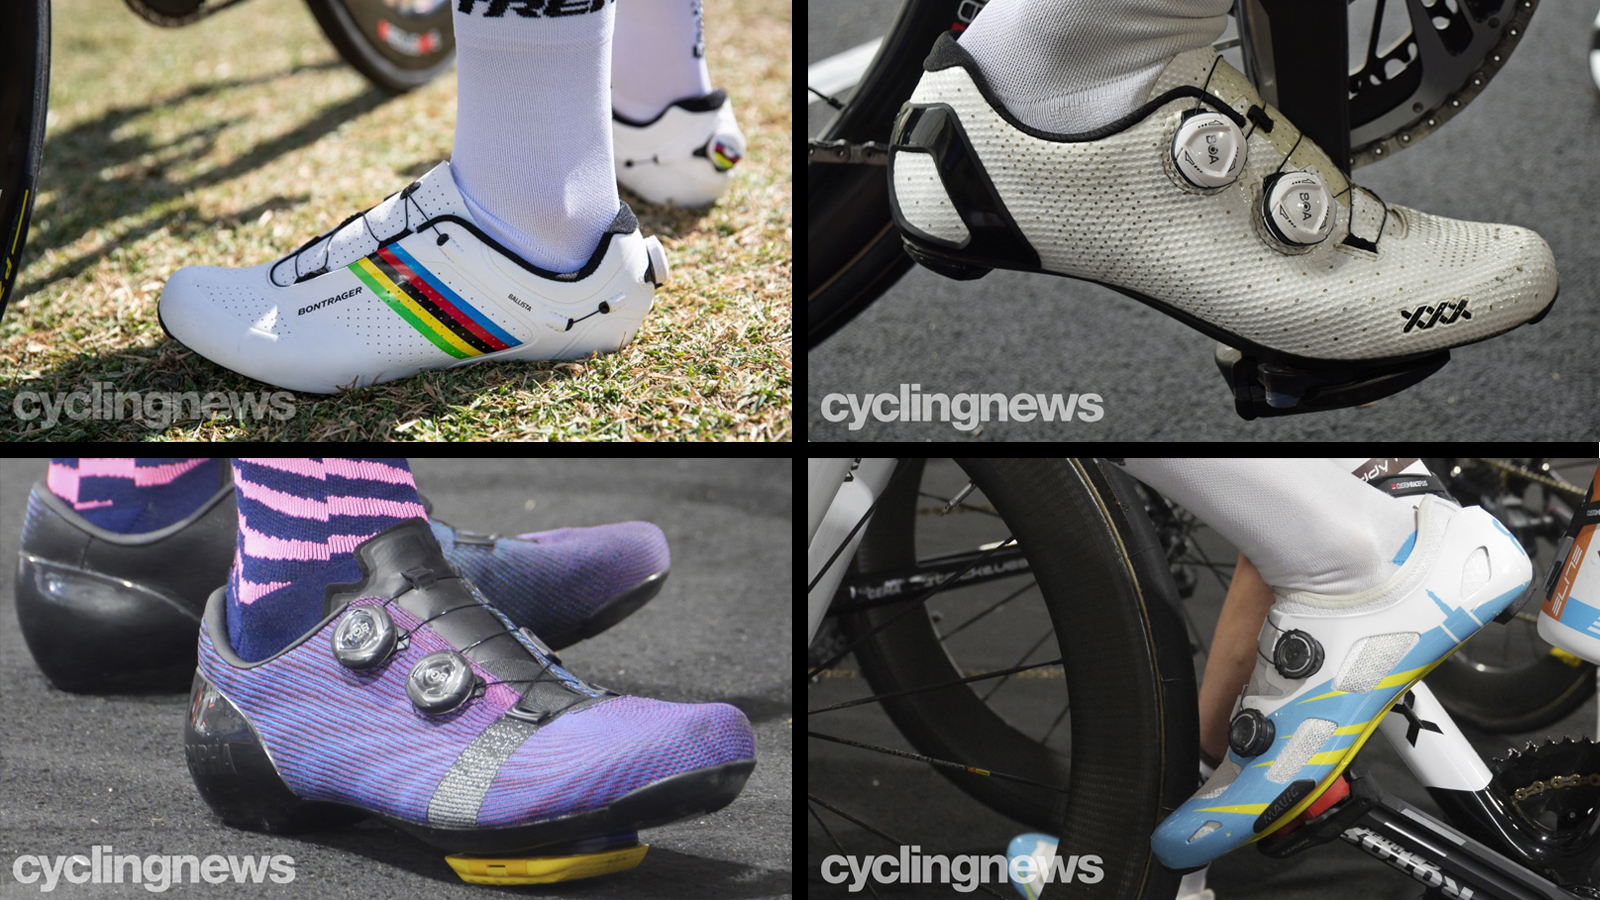 san francisco finest selection autumn shoes New shoes from Rapha, Bontrager and Mavic spotted at the Tour Down ...